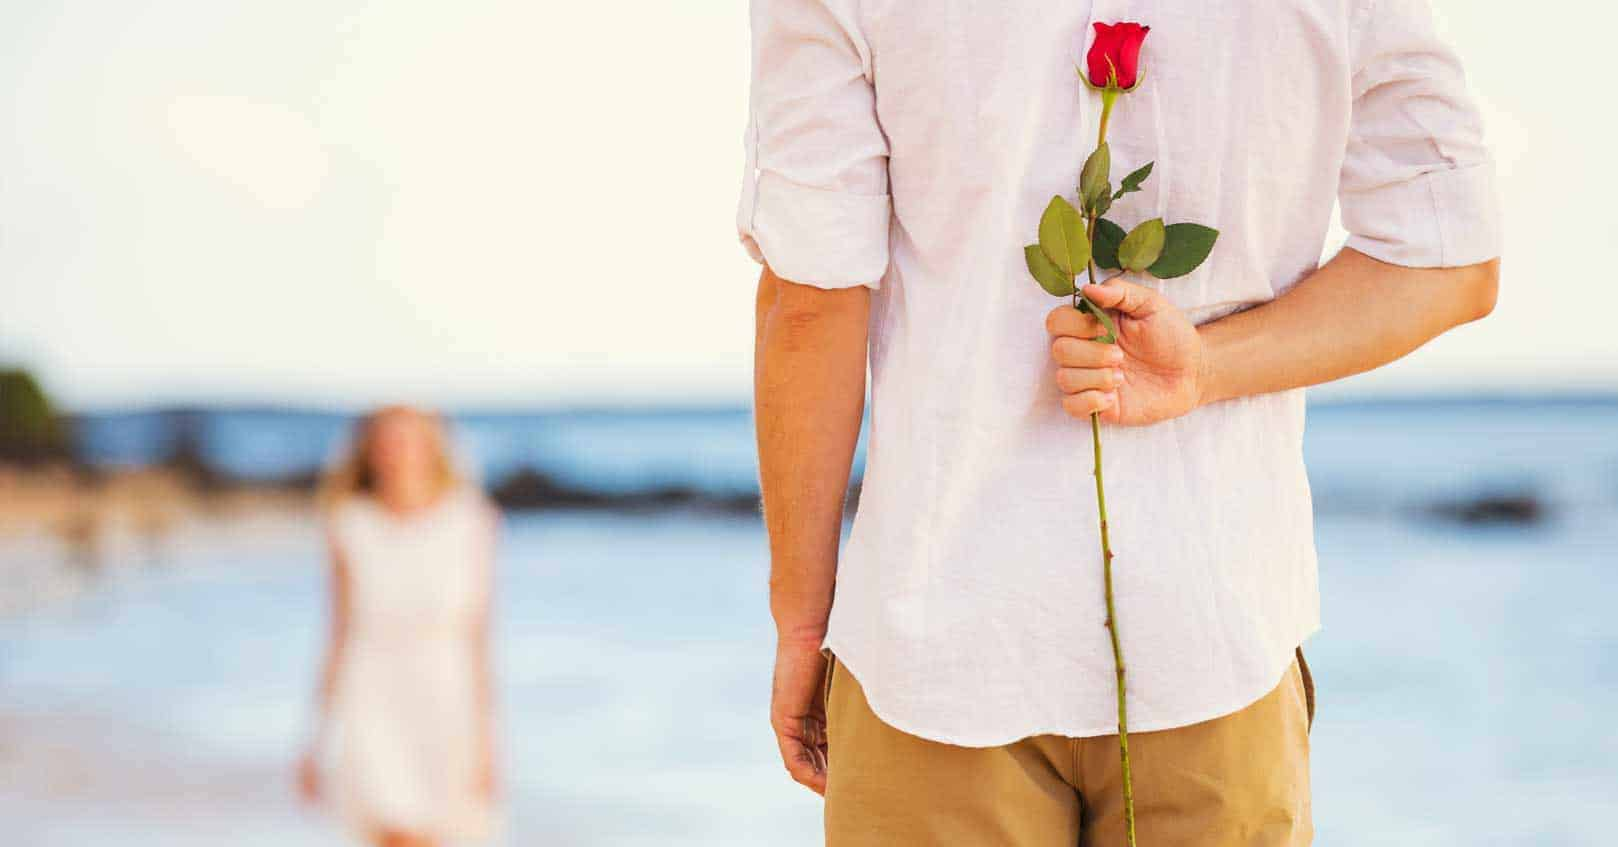 How to Make Her Fall in Love With You All Over Again